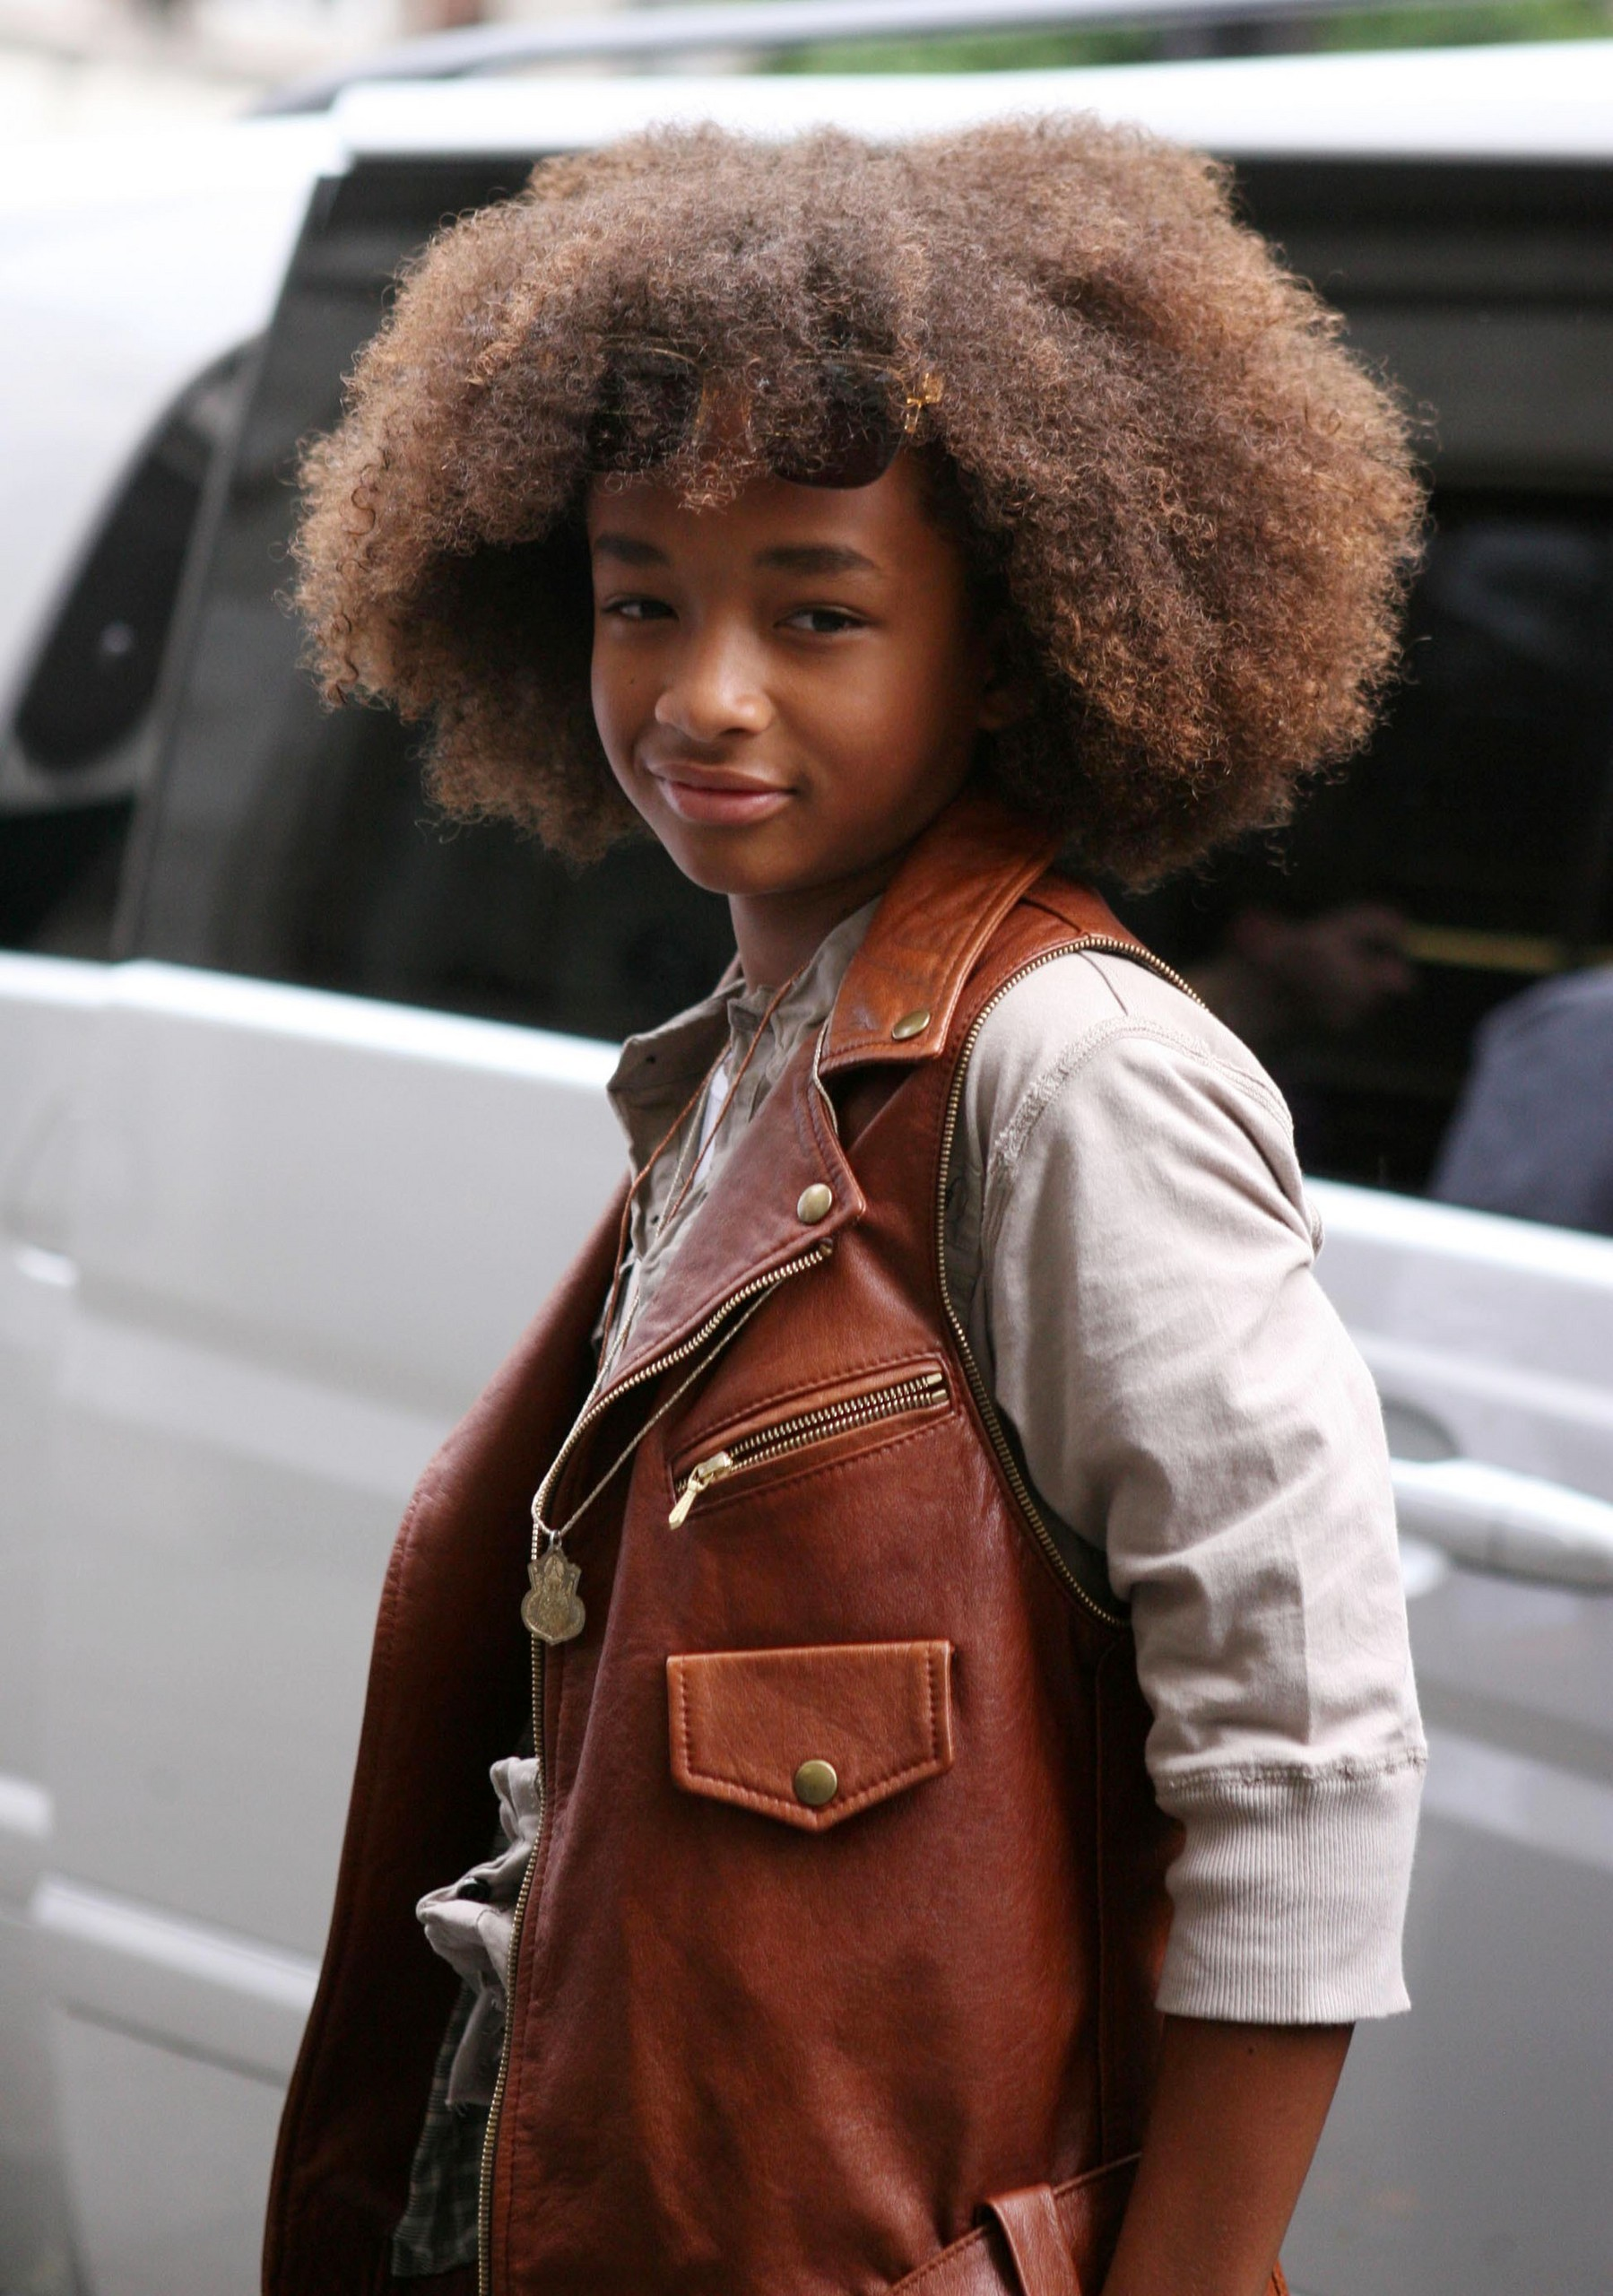 Jaden Smith Jaden Smith Photo 24016212 Fanpop